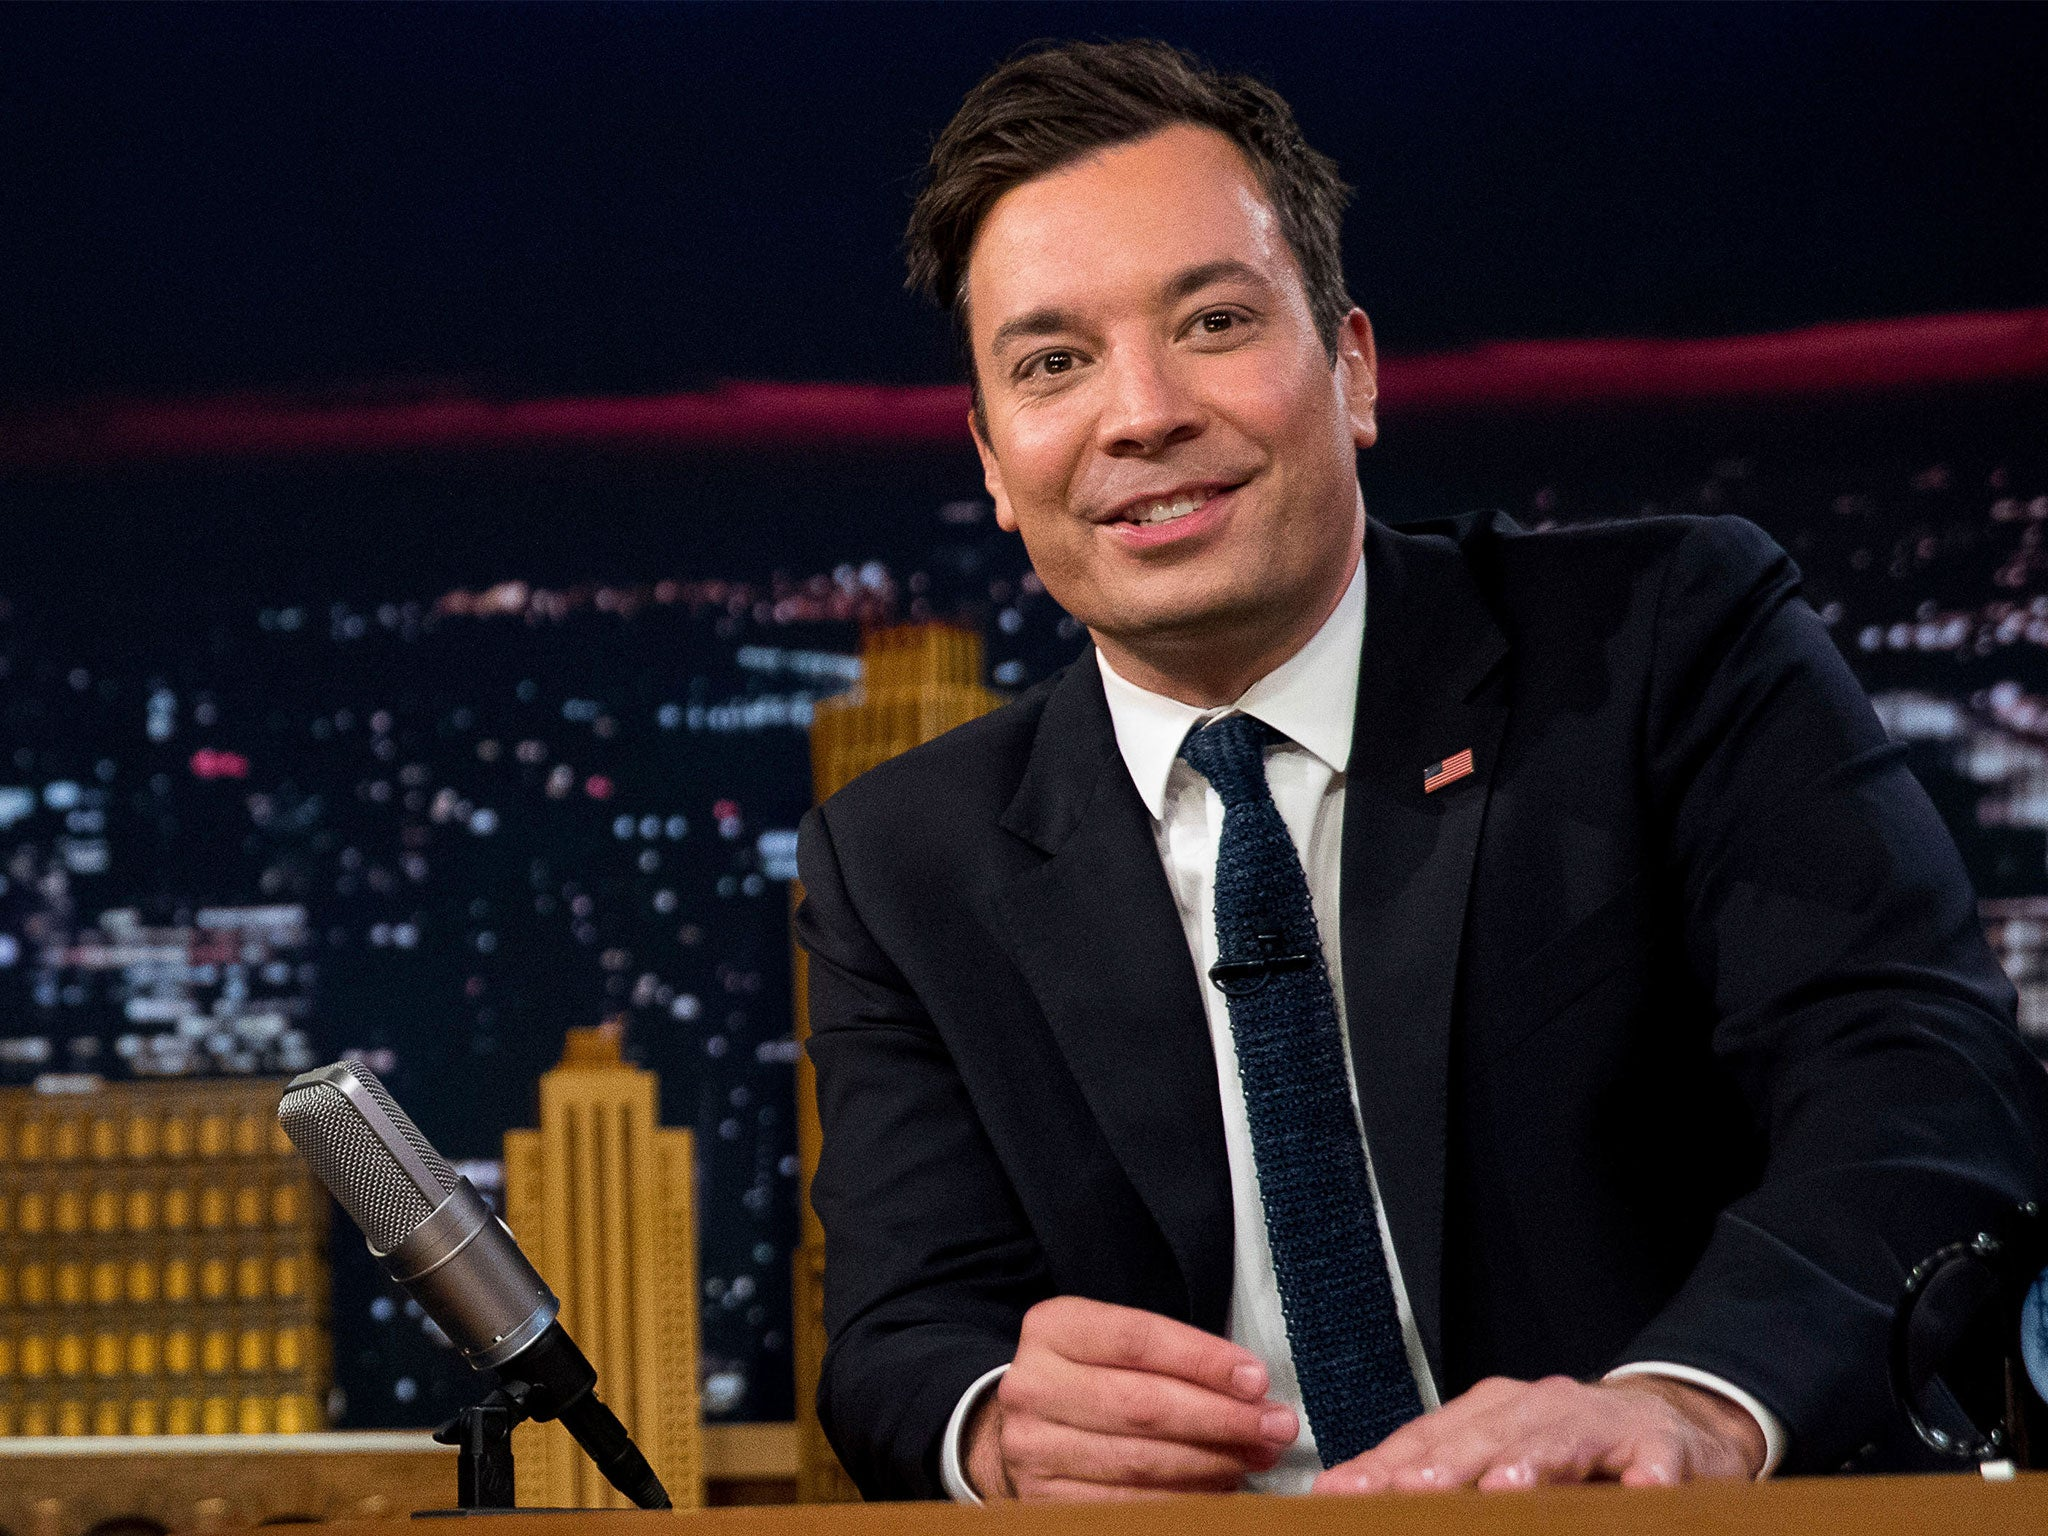 Jimmy Fallon condemned for wearing blackface in resurfaced SNL sketch from 2000